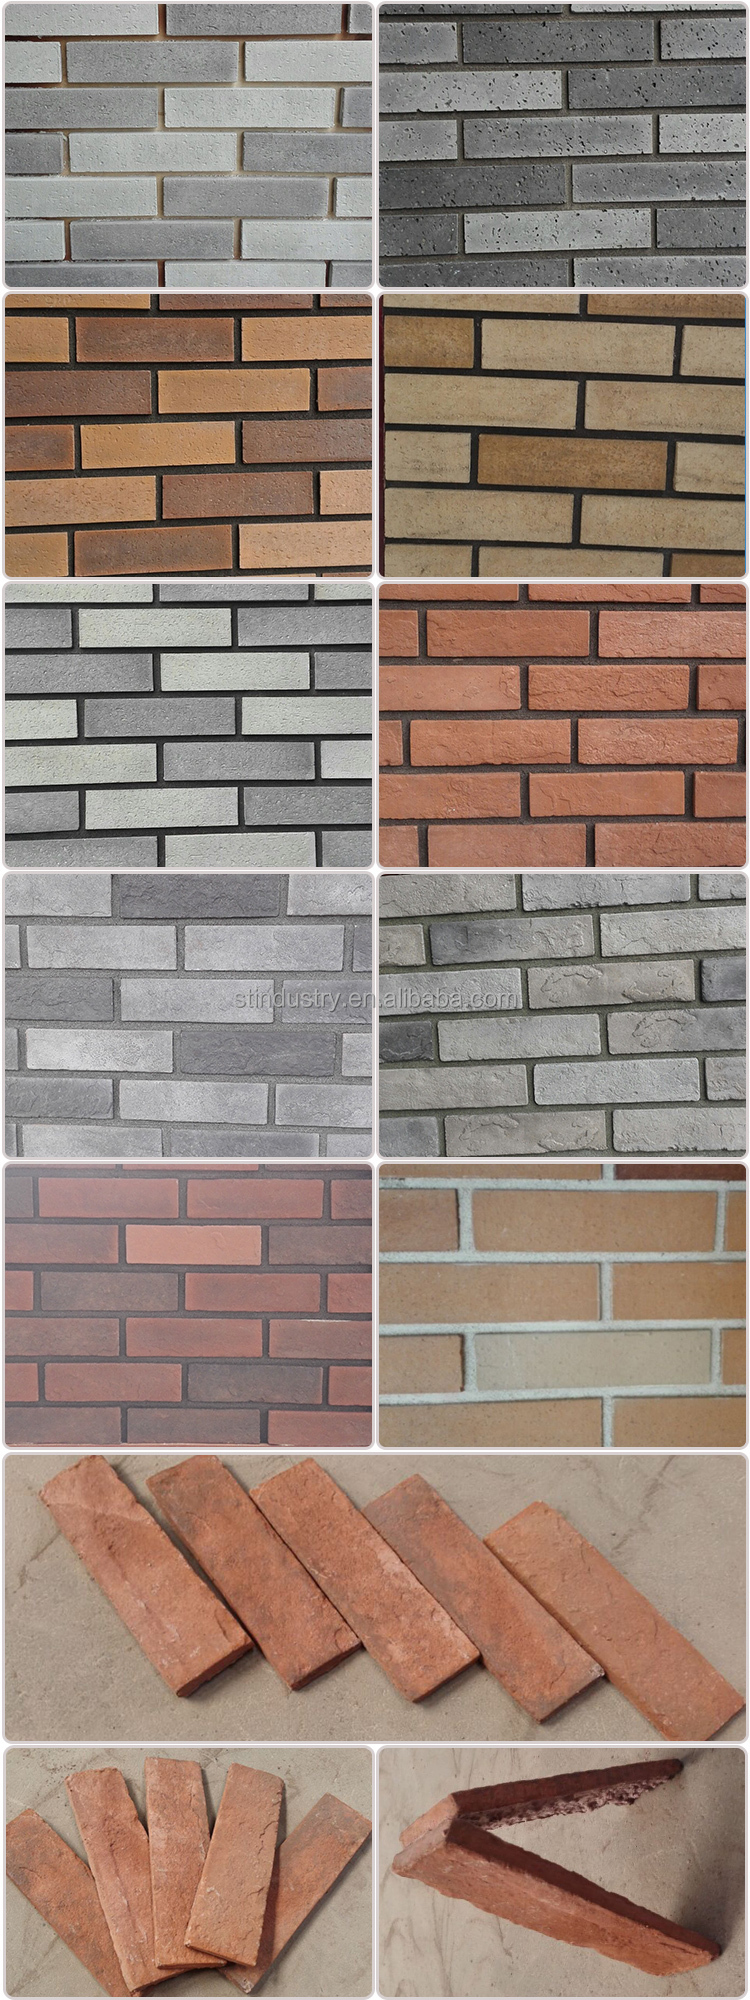 2016 wall decorative low price lowes interior brick - Brick decorative wall panels ...